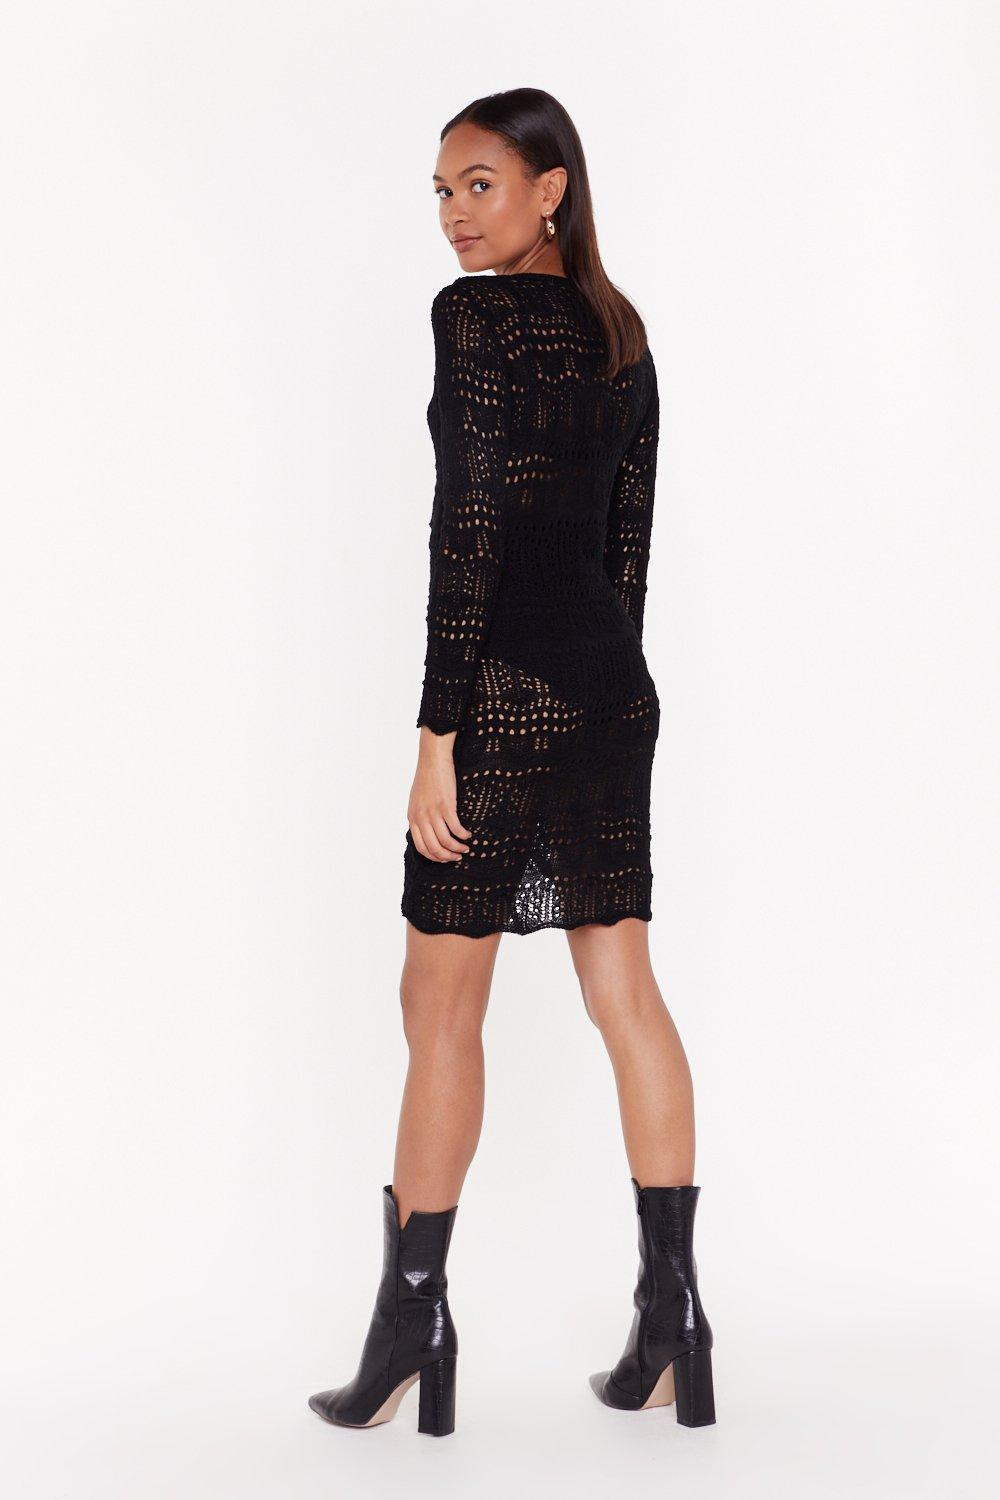 78394f8594c4 Don't Ruche Babe Crochet Dress   Shop Clothes at Nasty Gal!